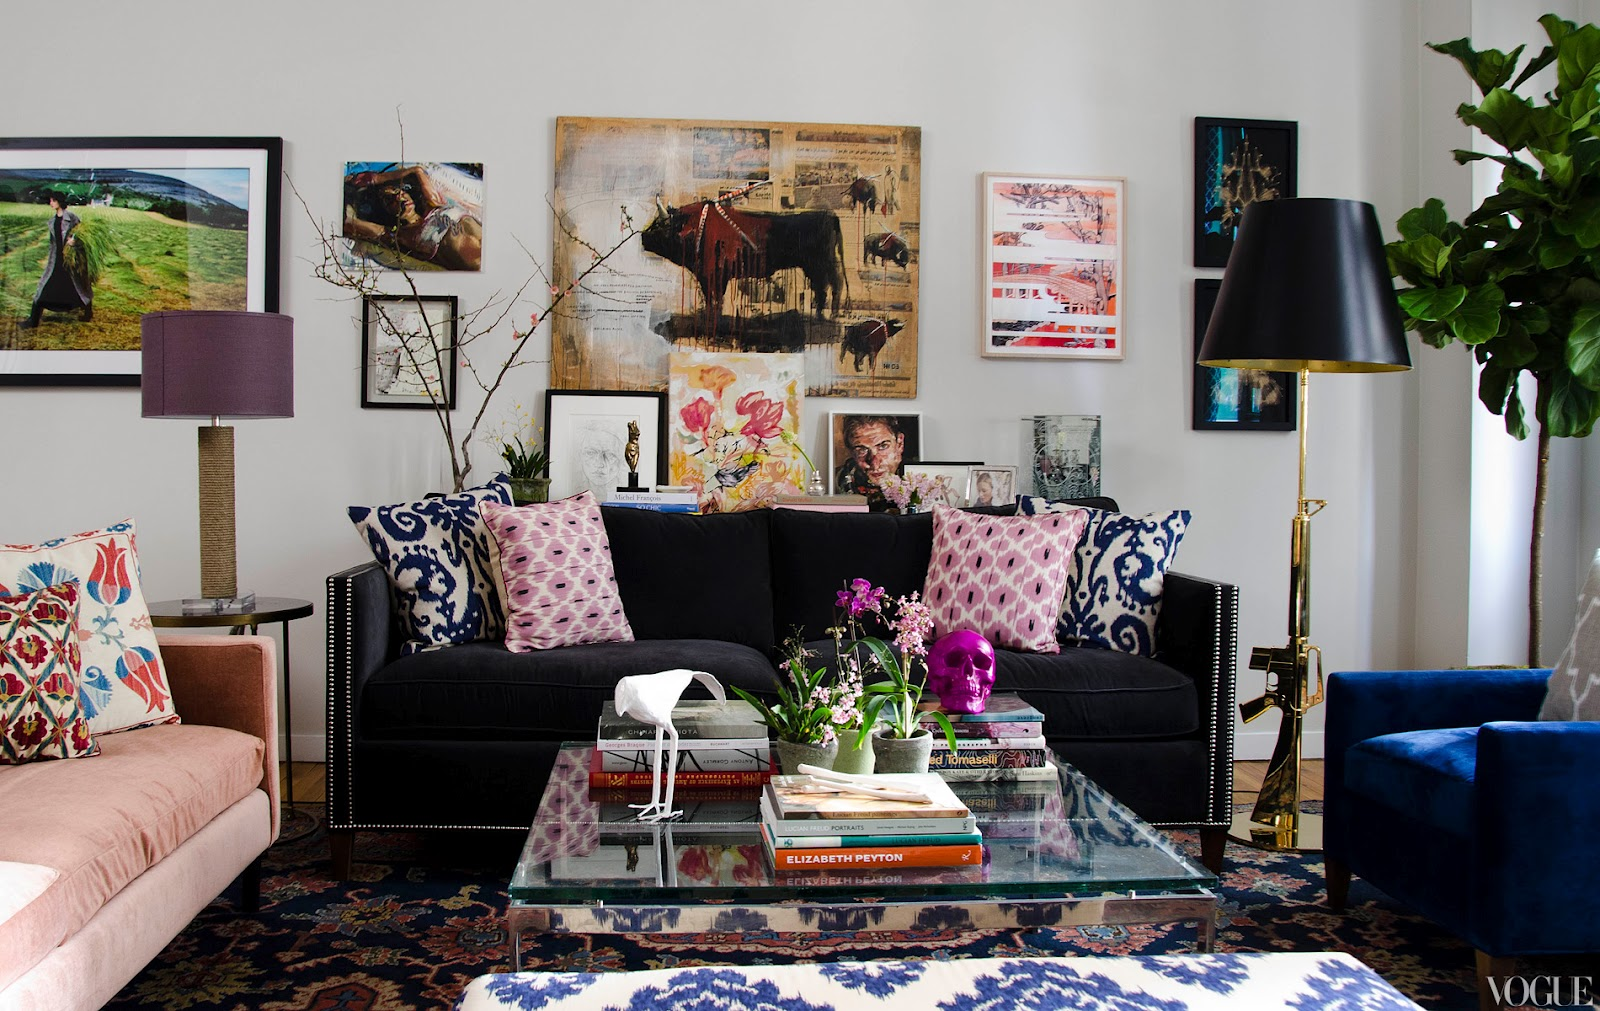 vogue chrome sofa table abbyson living vienna black leather bed and chaise sectional decor me happy by elle uy: can men pink coexist? totally.